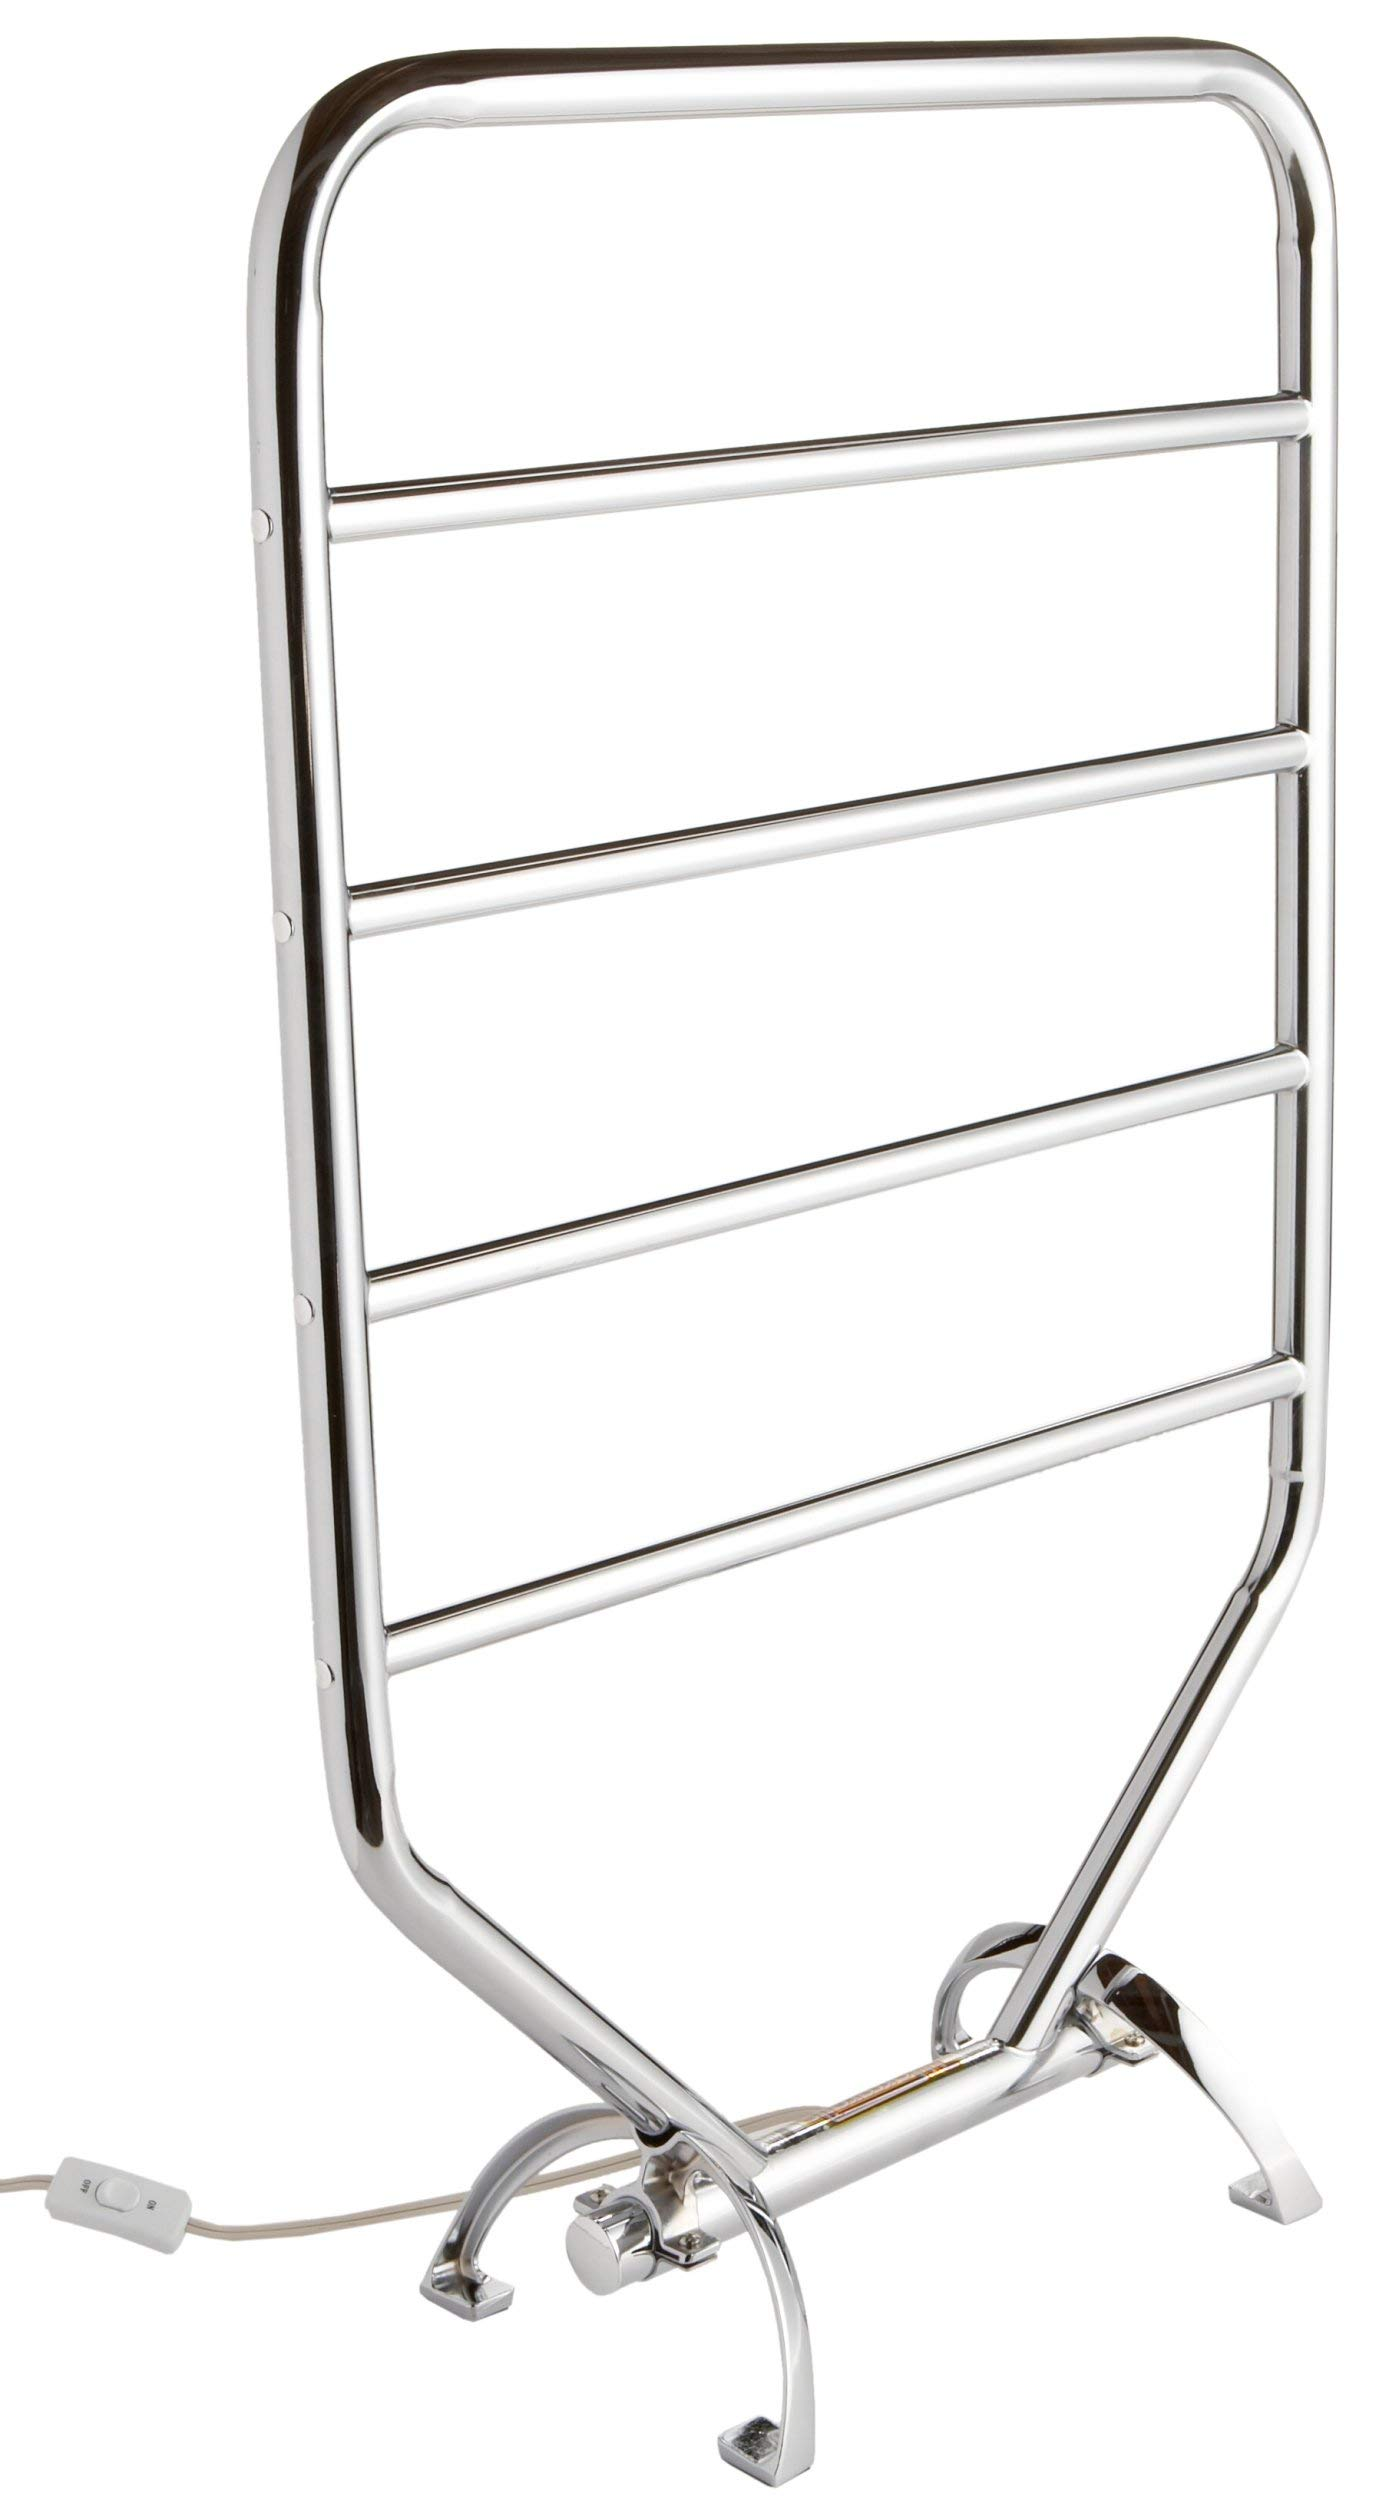 Warmrails RTC Traditional Wall Mounted or Floor Standing Towel Warmer, Chrome Finish (Renewed)